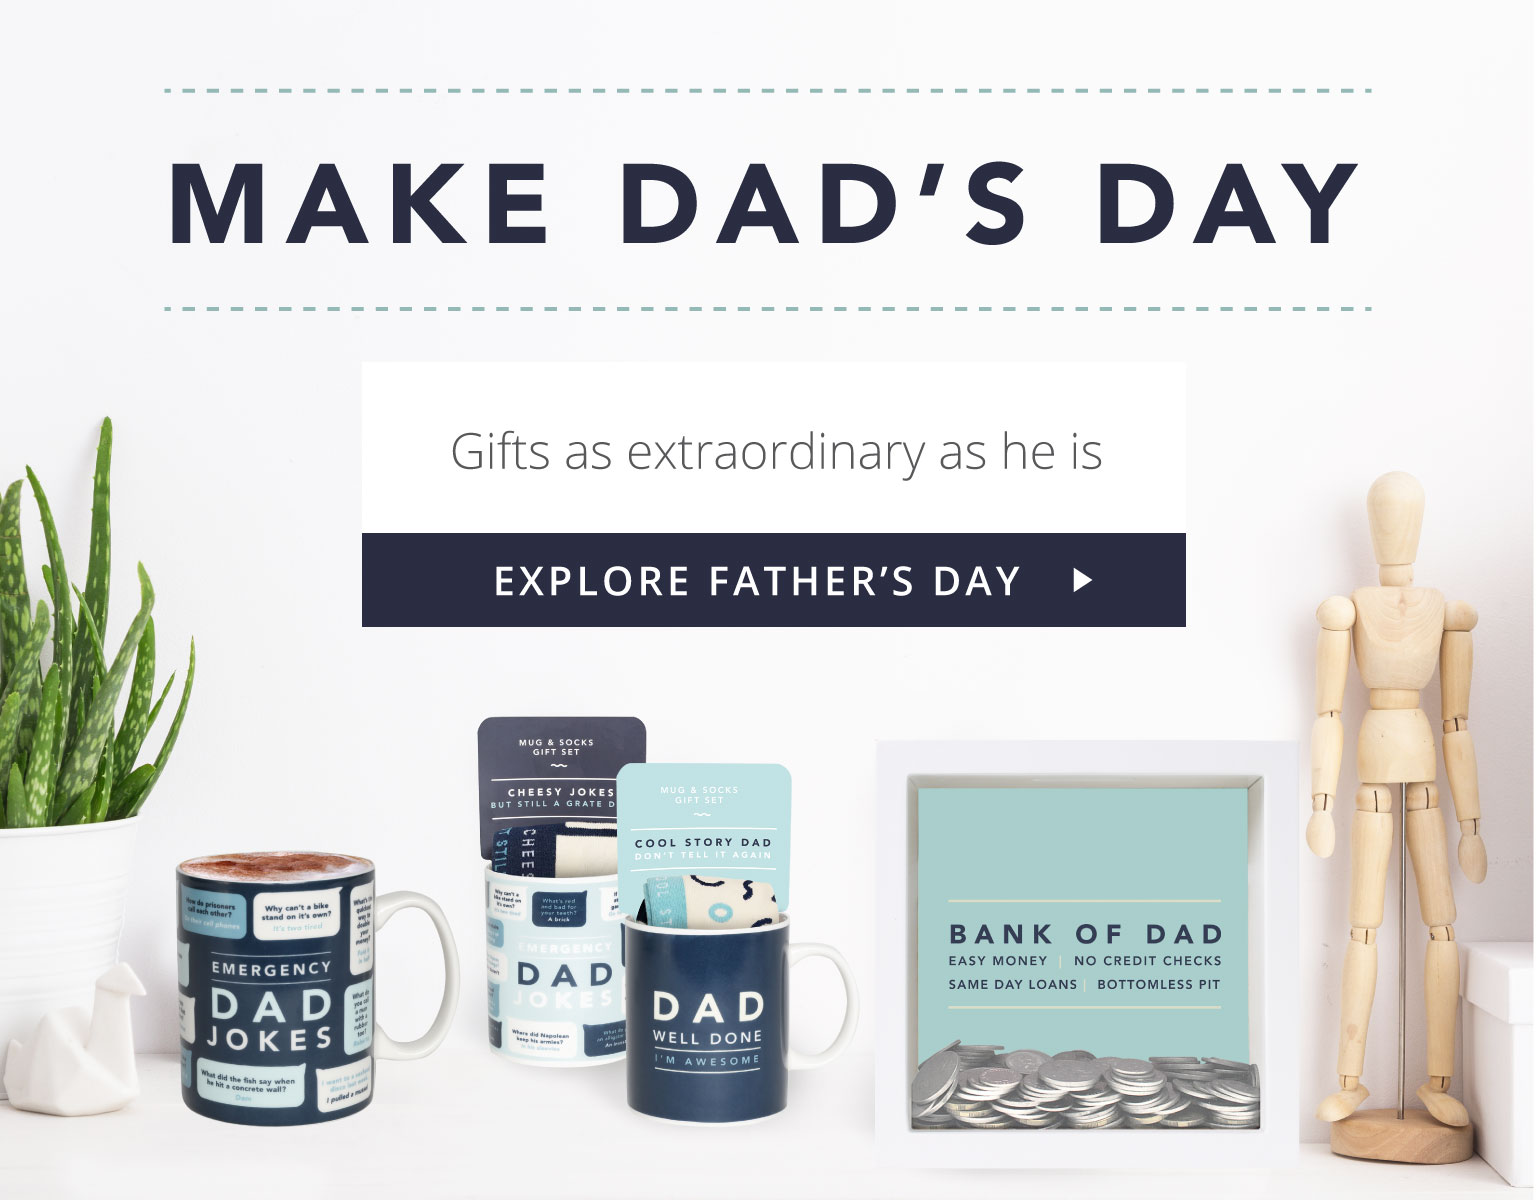 Explore Father's Day